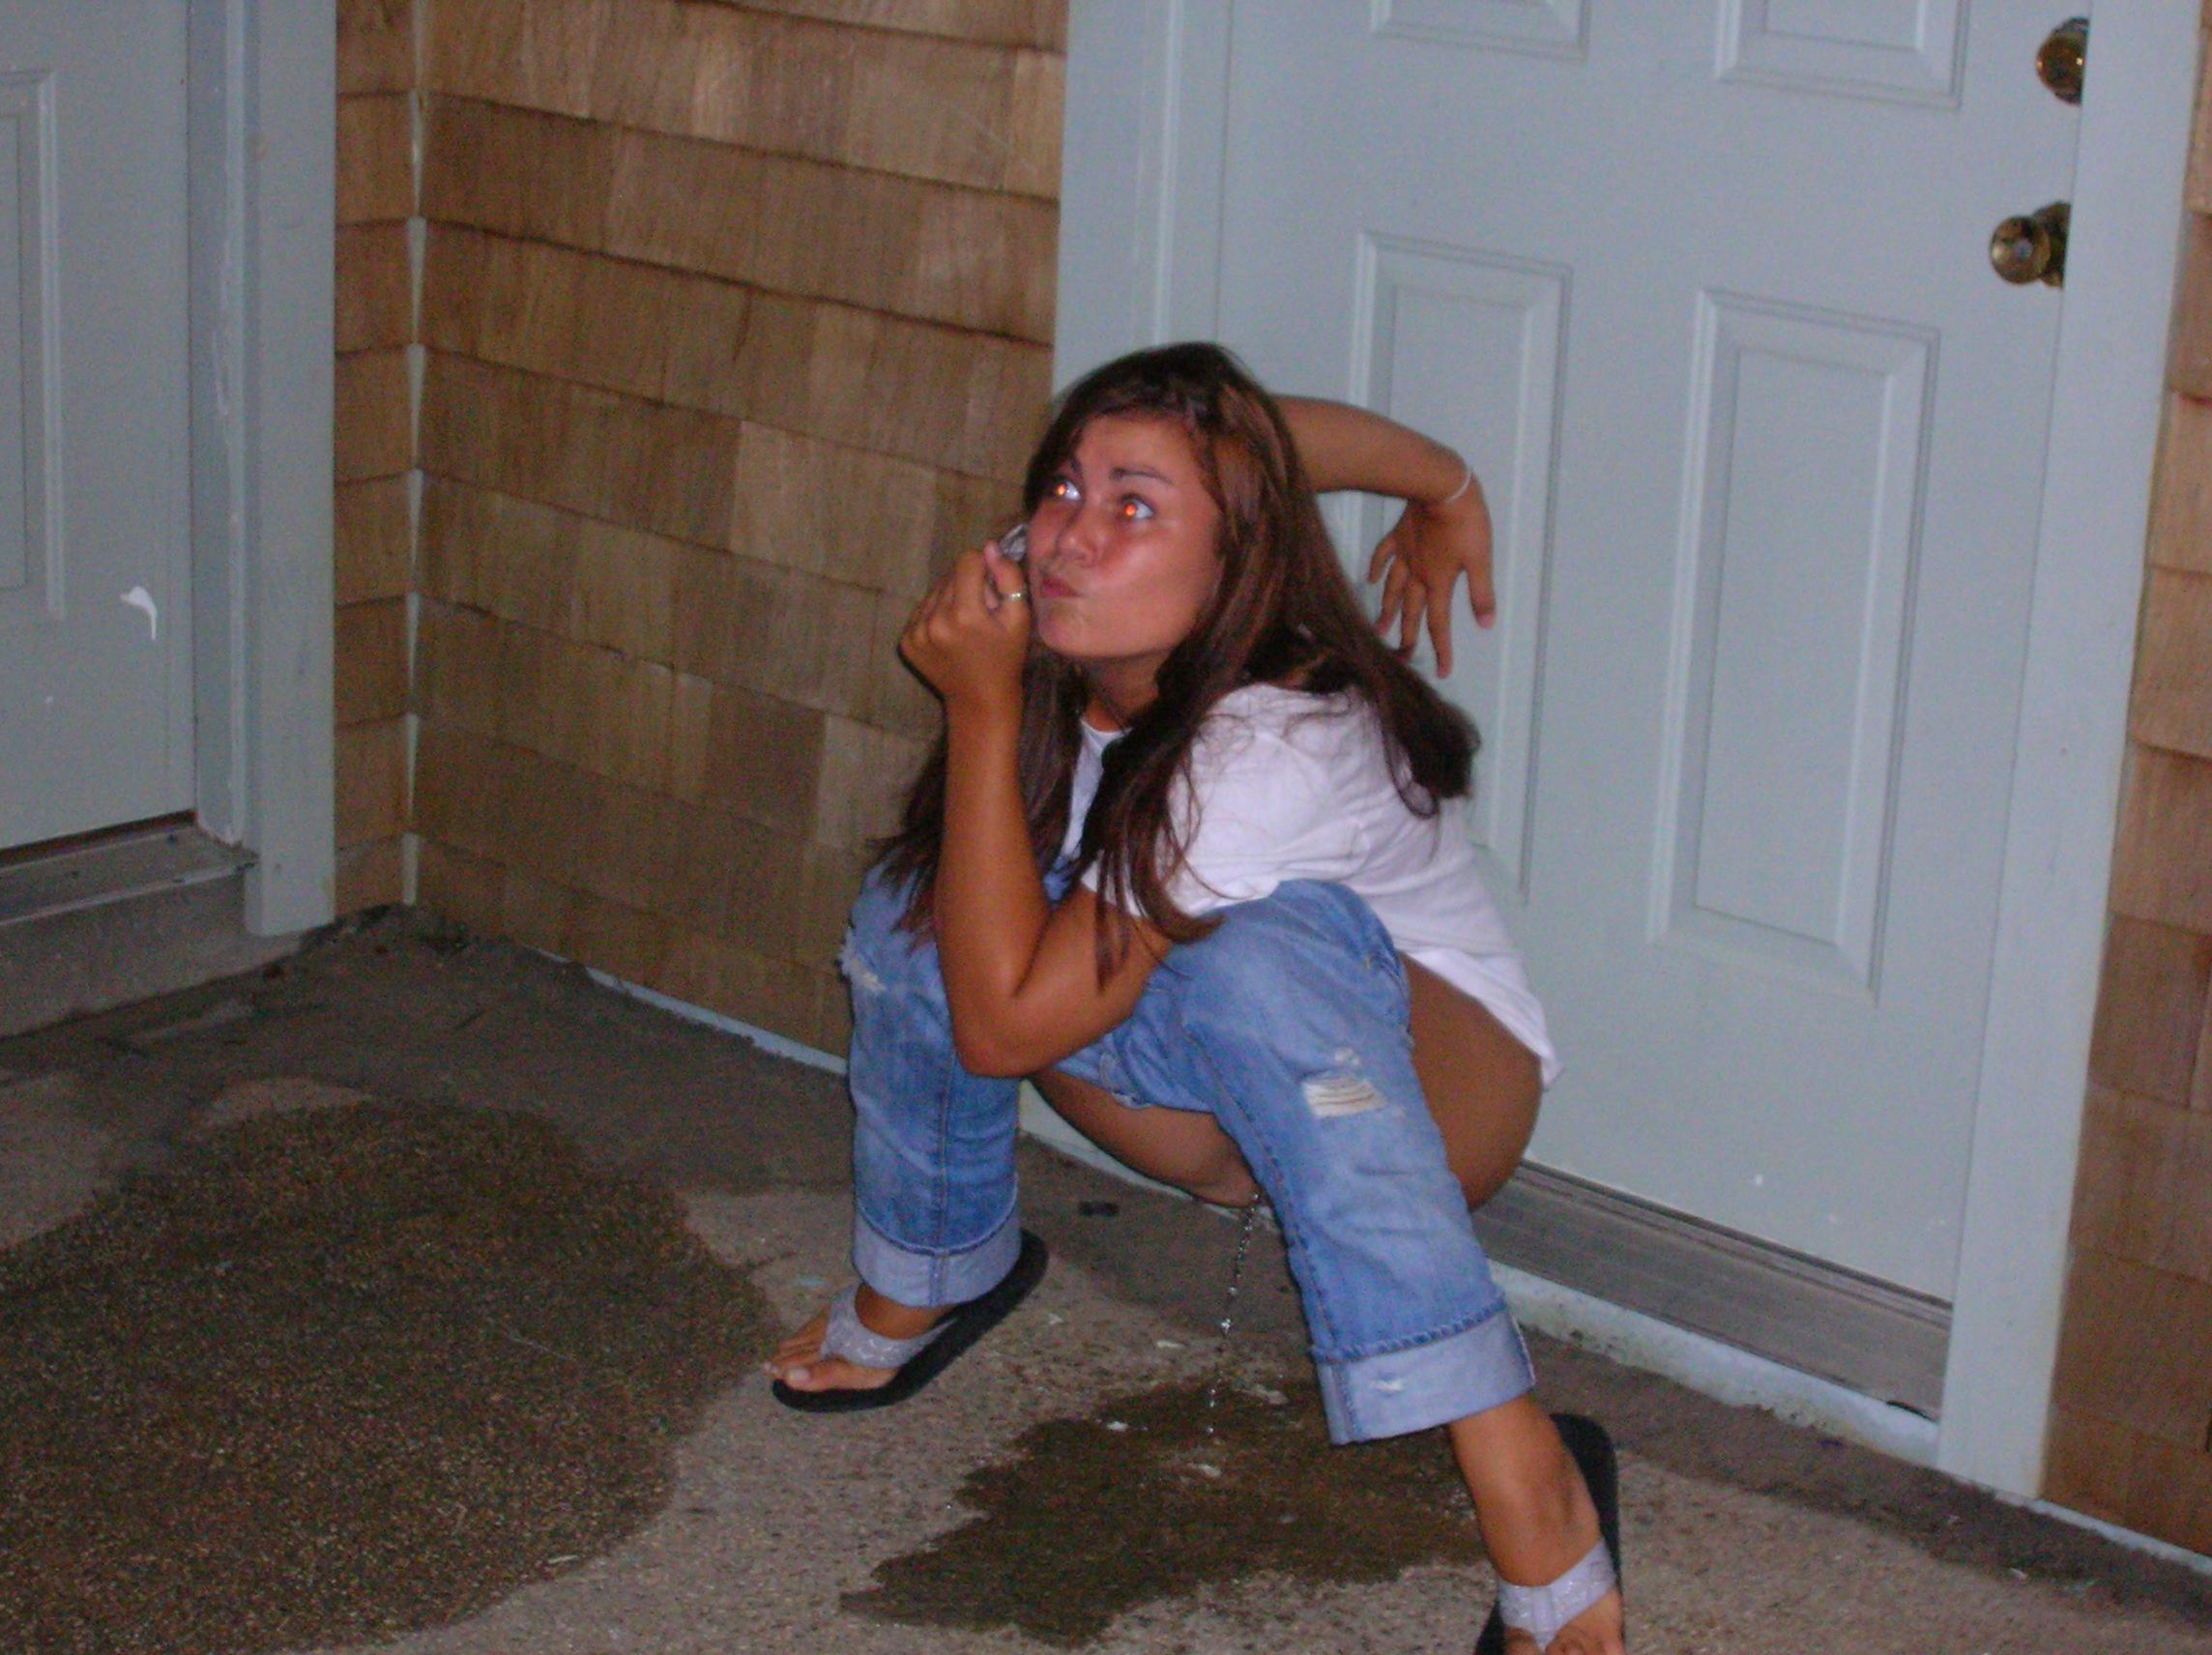 Free pictures of girls pissing their pants can